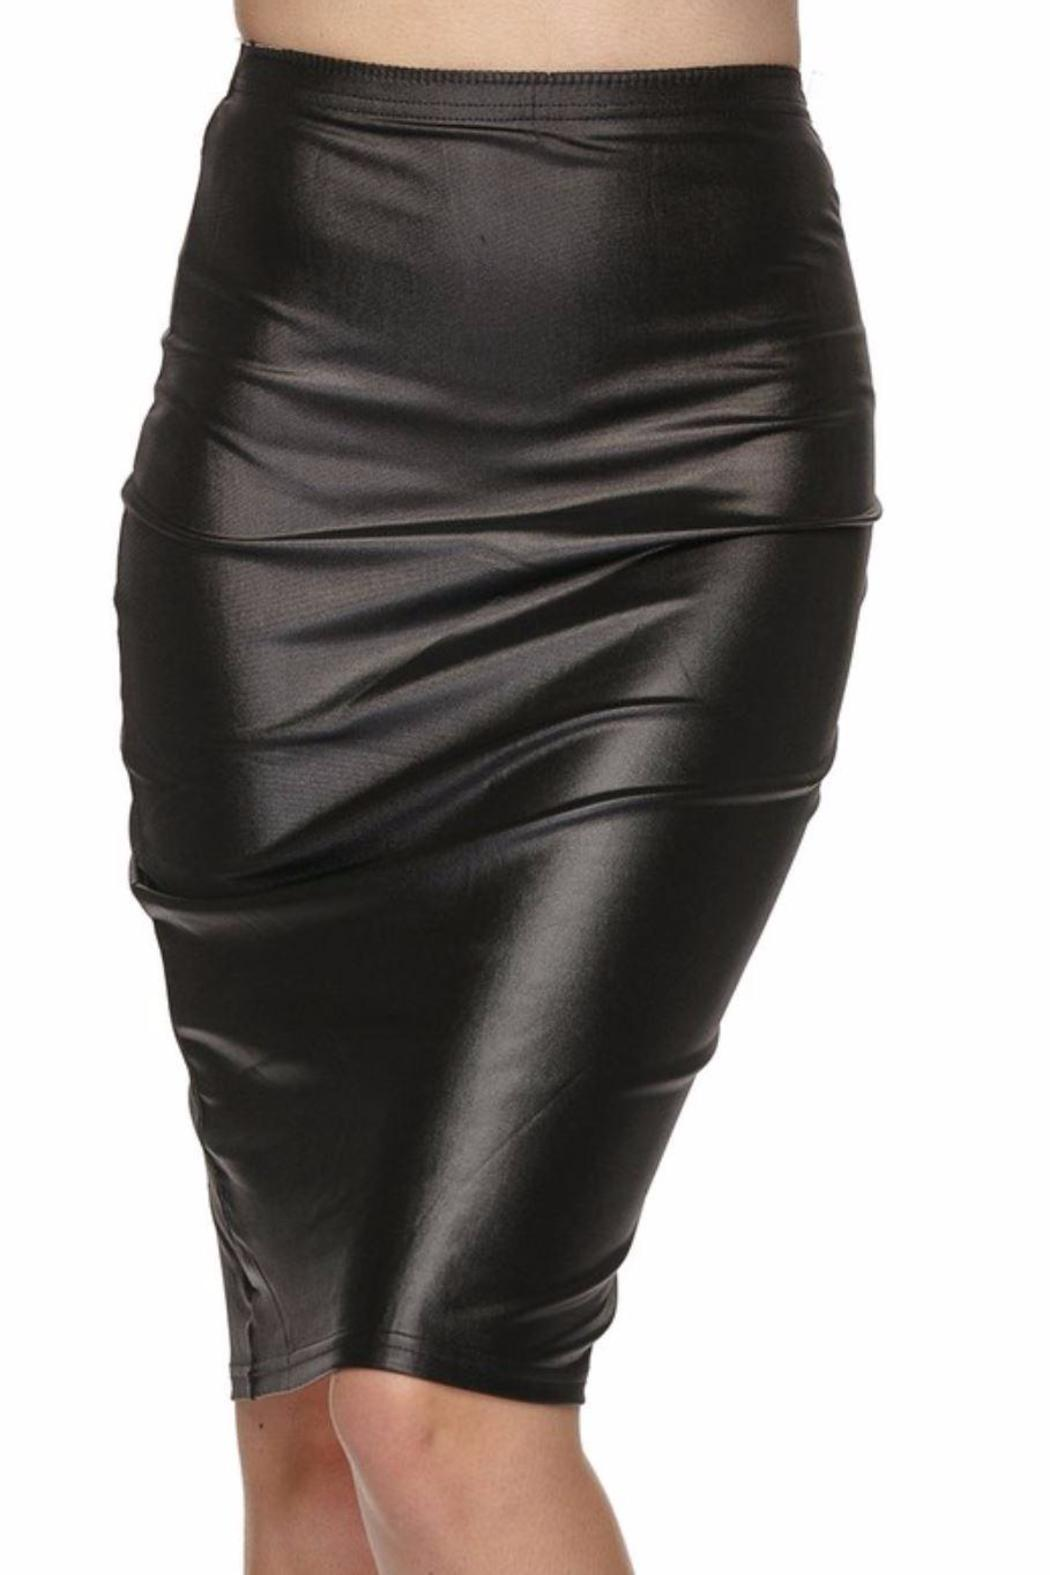 Daisy's Fashions Faux Leather Skirt - Front Full Image